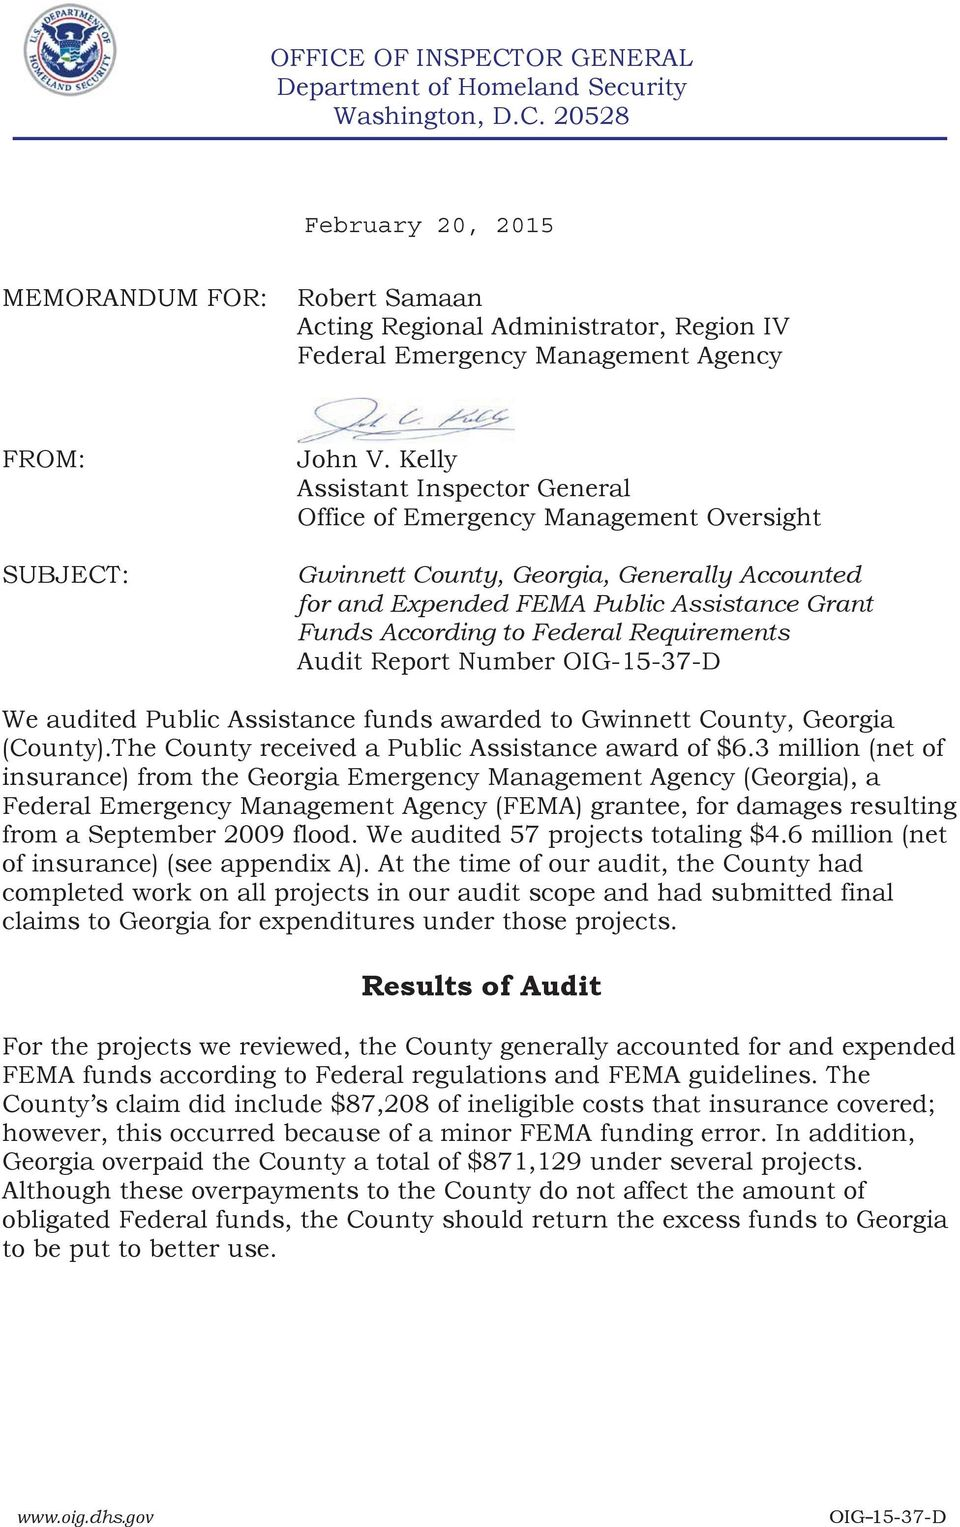 Requirements Audit Report Number We audited Public Assistance funds awarded to Gwinnett County, Georgia (County).The County received a Public Assistance award of $6.